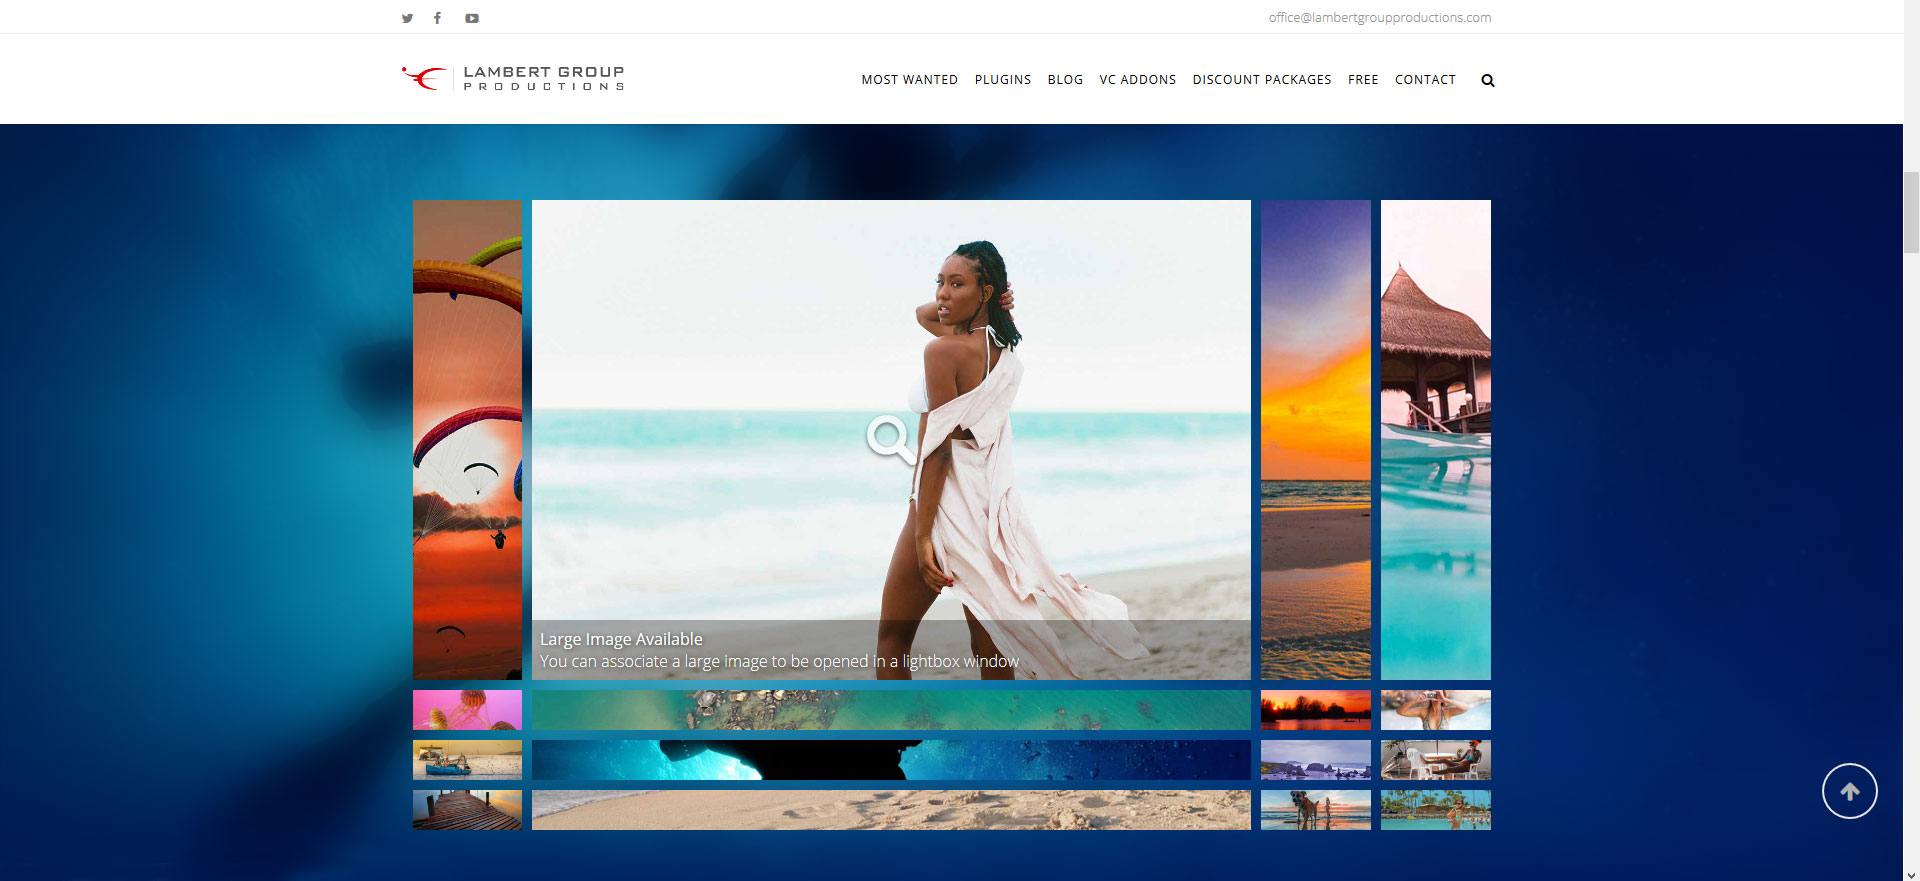 Famous - Responsive Image & Video Grid Gallery for WPBakery Page Builder (formerly Visual Composer) - Grid Fixed Width and Centered